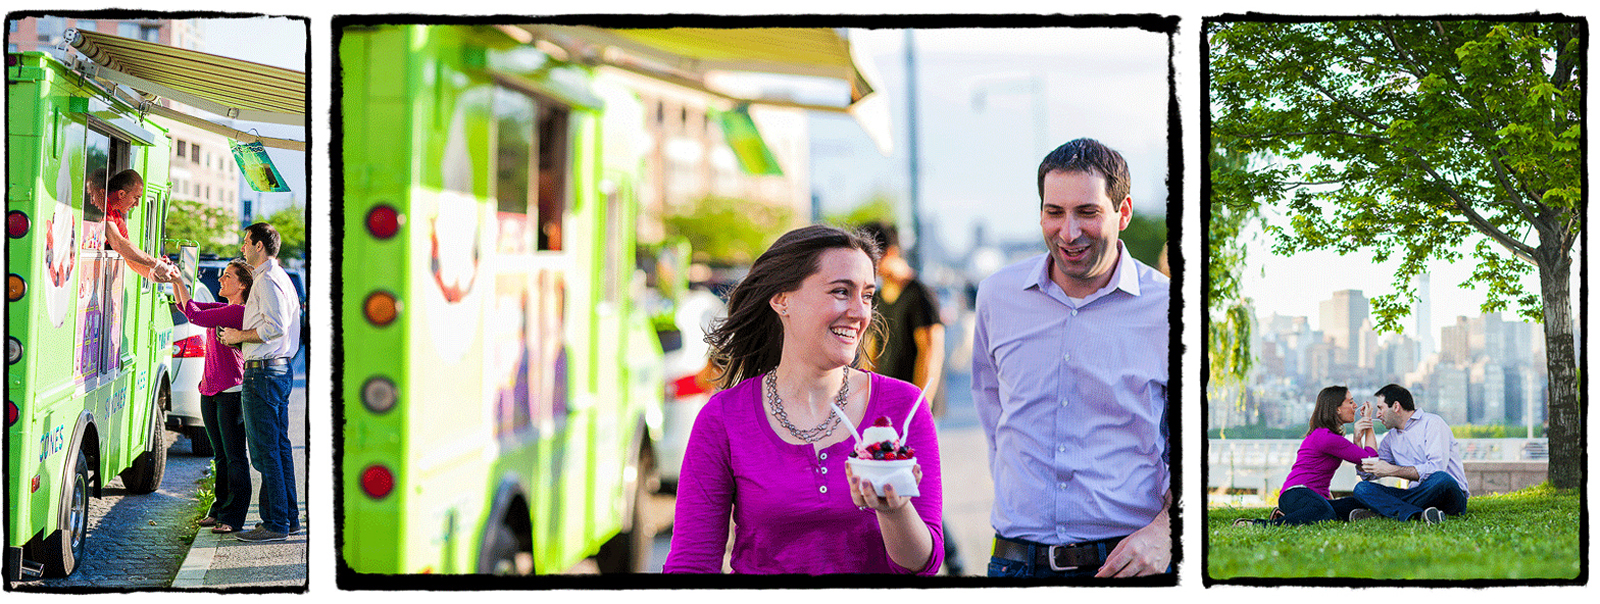 Engagement Portraits: Johanna & Greg visit the ice cream truck in Long Island City.